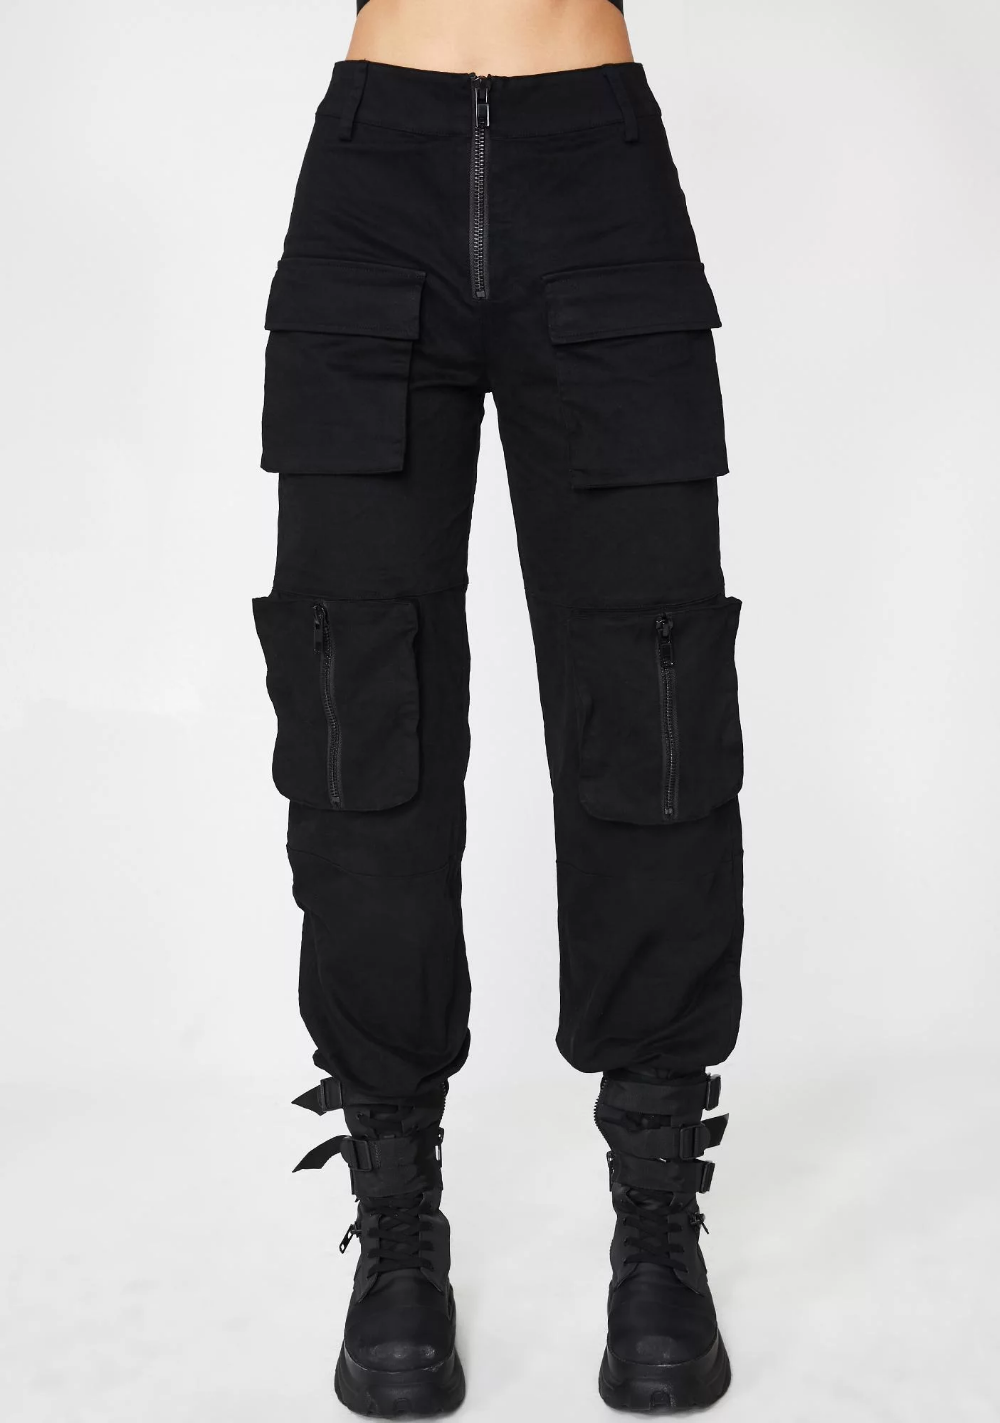 Get Real Cargo Pants Cool Outfits Army Cargo Pants Aesthetic Clothes